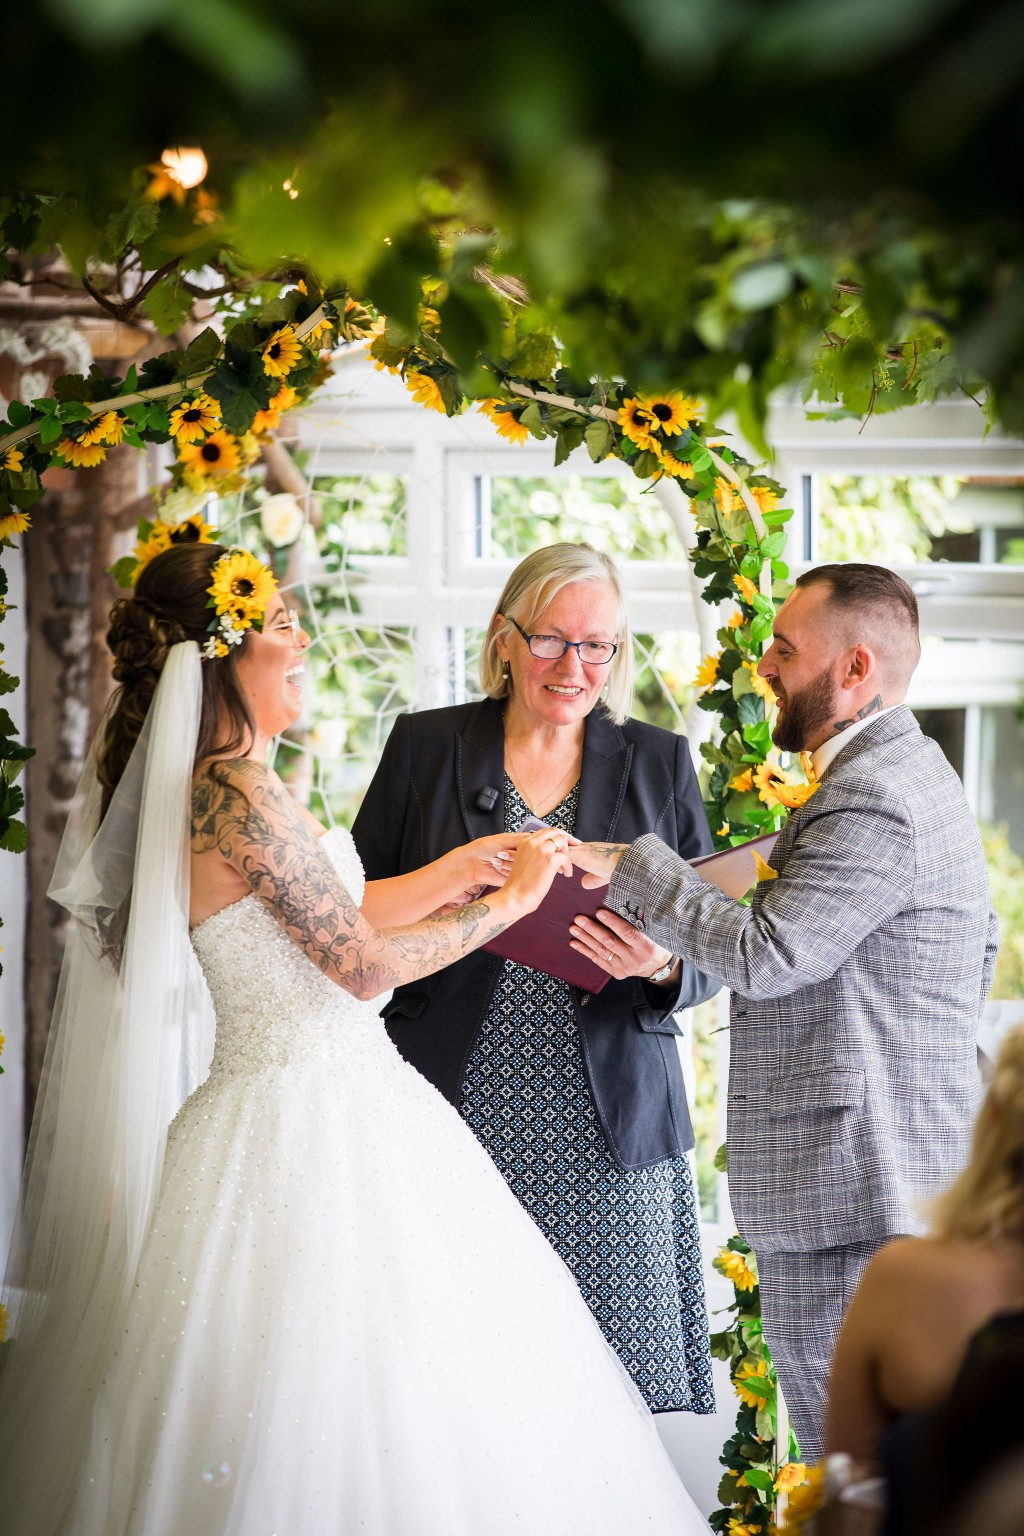 Harriet&Rhys Wedding - Magical sunflower wedding - quirky wedding with dodgems (8)